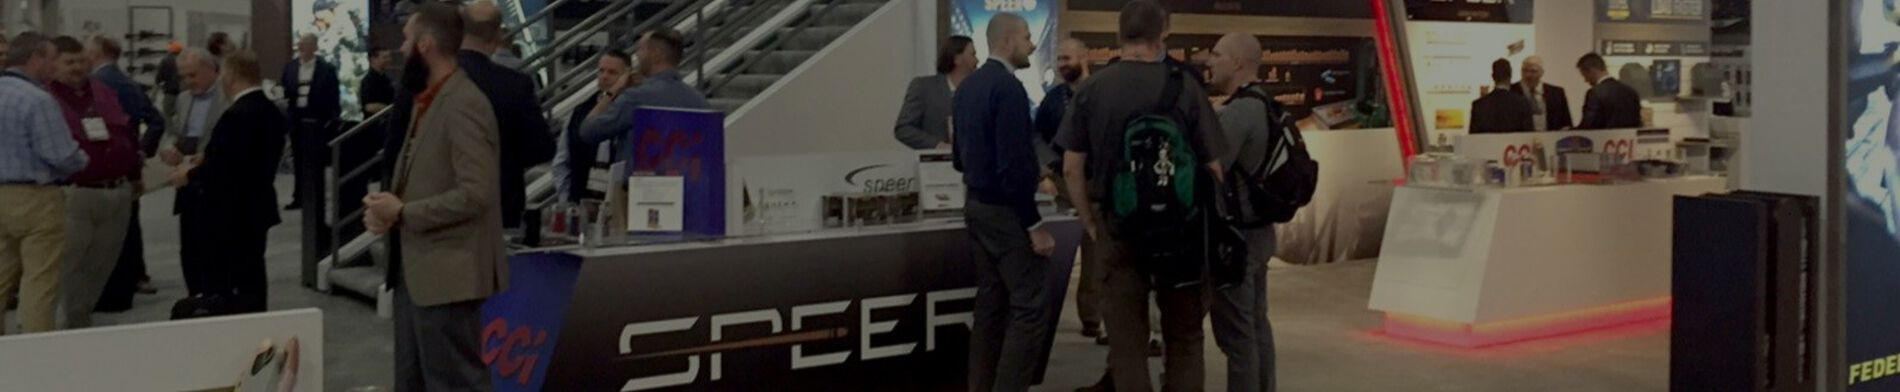 Speer booth at an Event